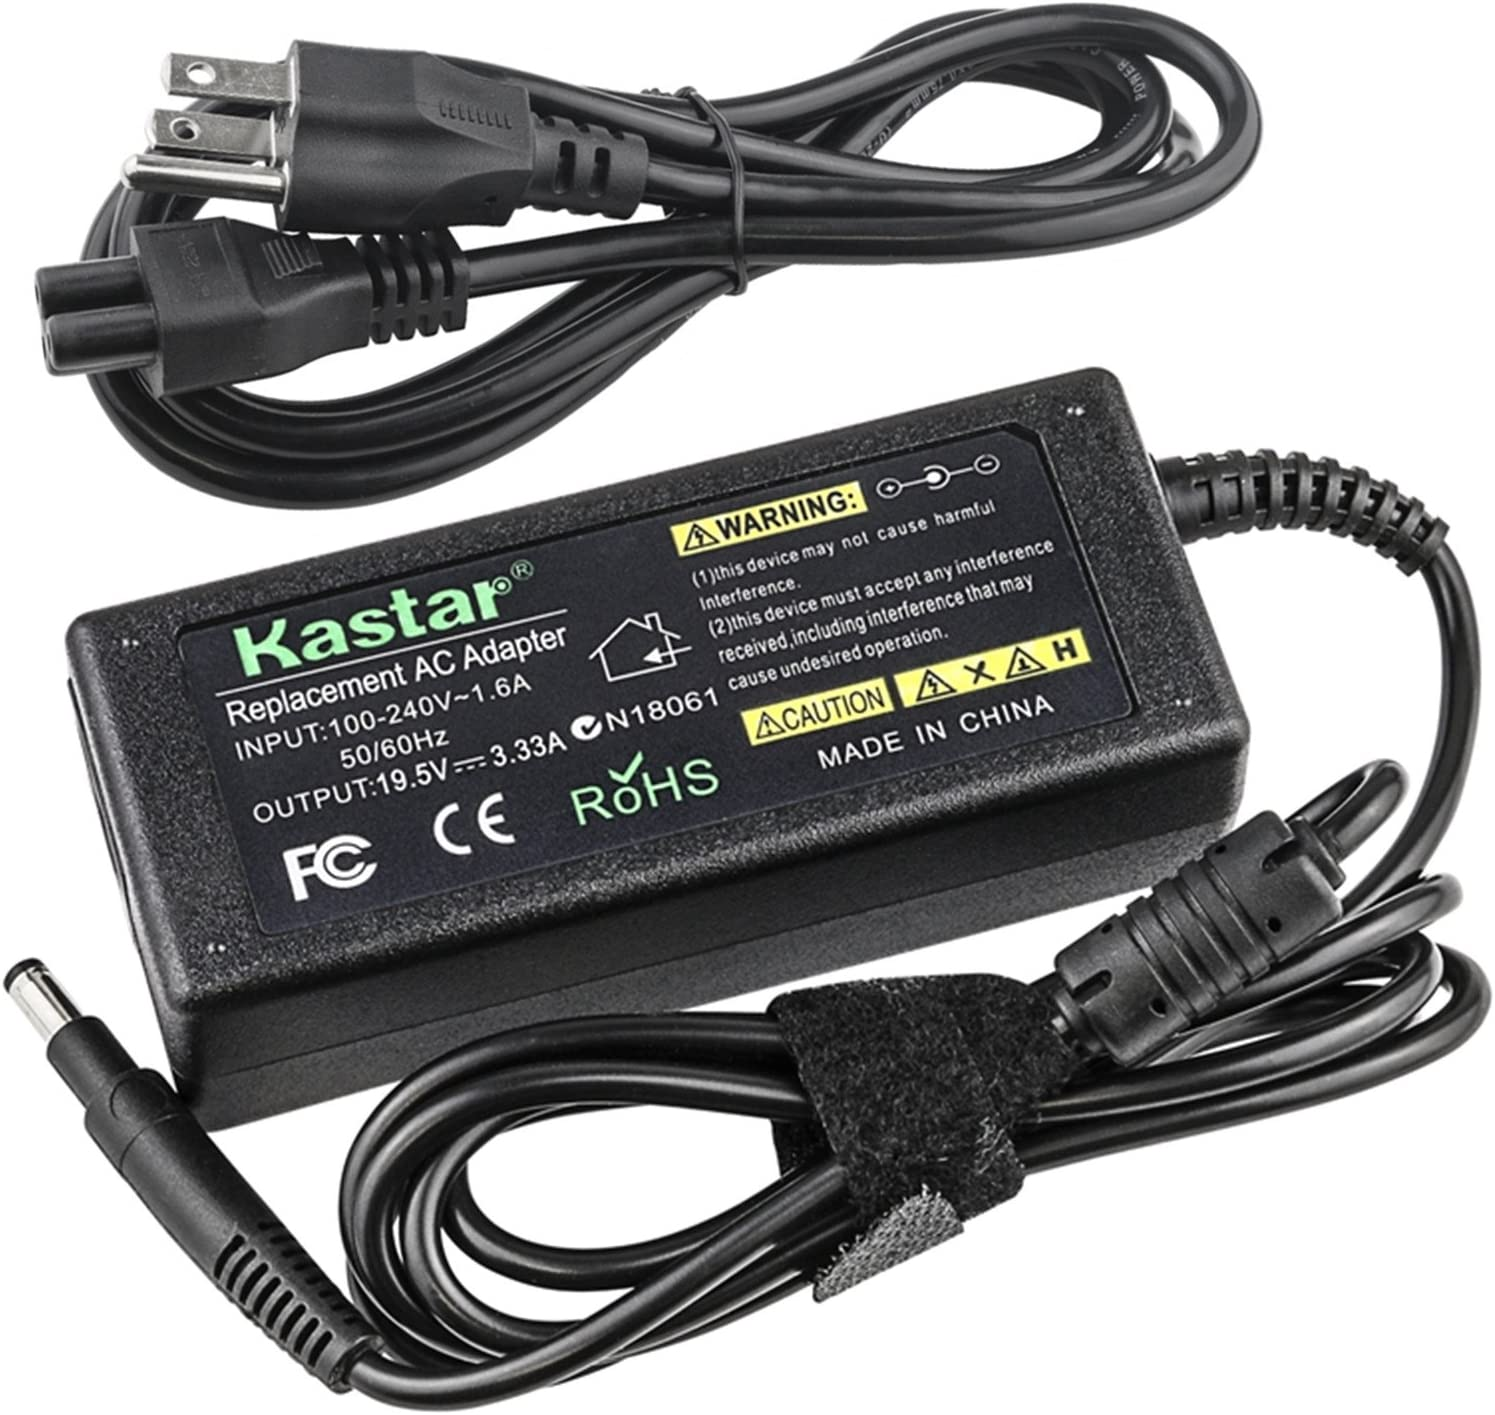 Kastar AC Adapter Power Supply Replacement for HP Pavilion TouchSmart Sleekbook 14-b109tx 14-b109wm 14-b150us 14-b157nr 15-b104xx 15-b119wm 15-b123cl 15-b129wm 15-b152nr 15-b156nr 15-b161nr